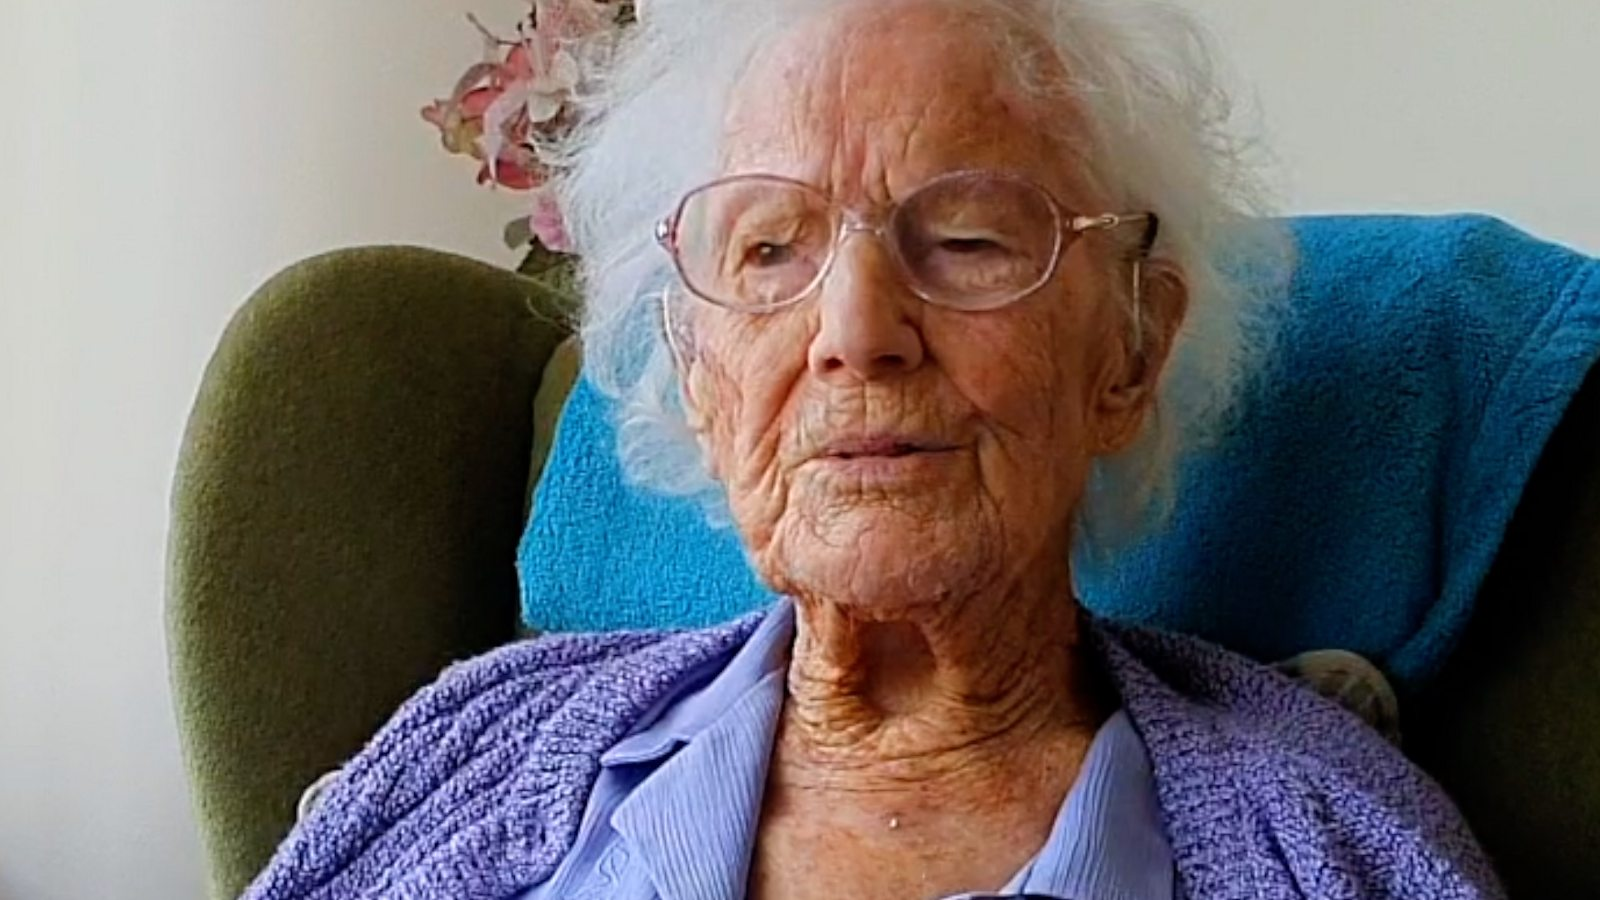 'I'm almost 111 and make the most of what I've got'